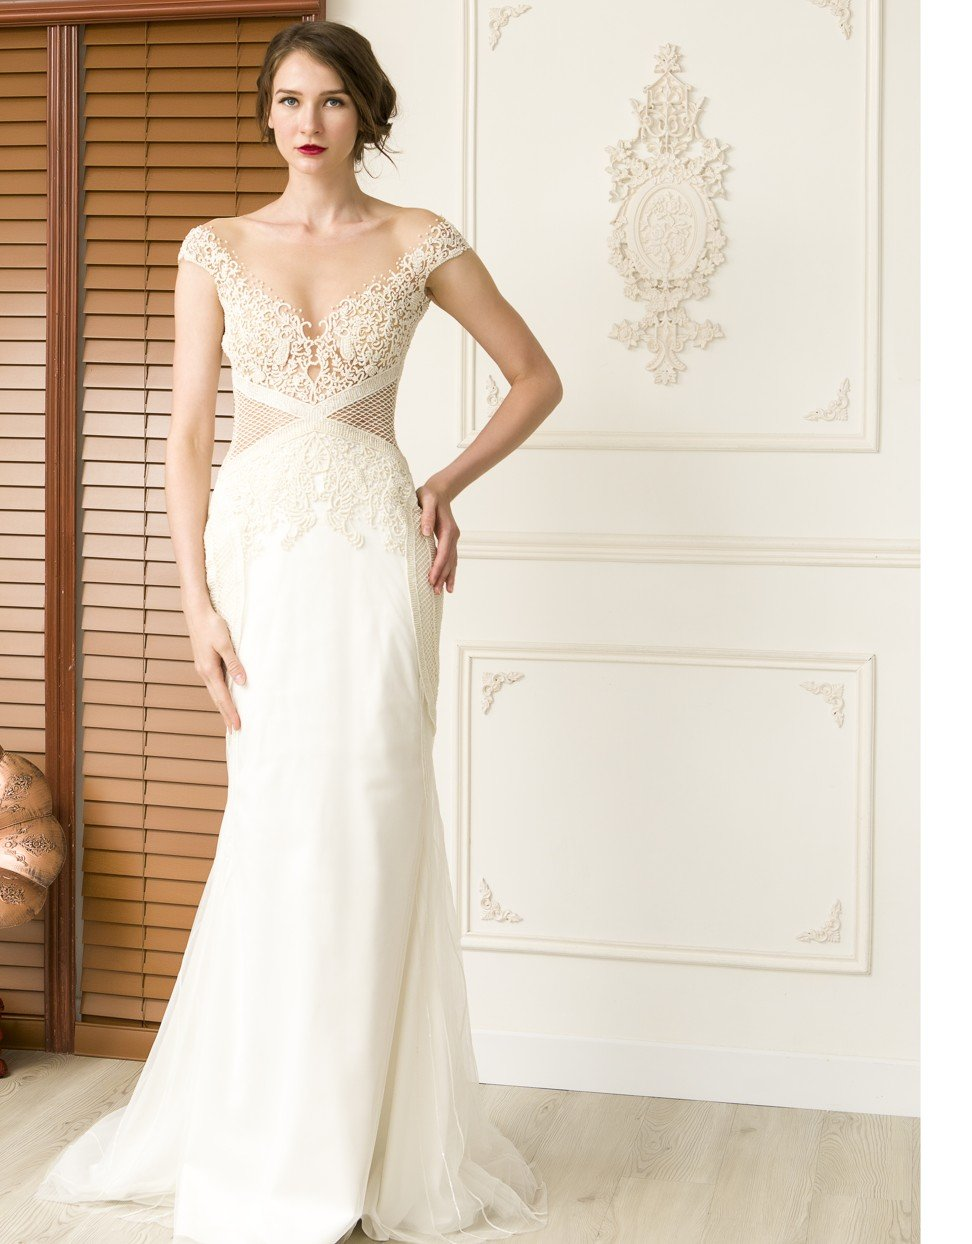 b6fa30b9187 Why brides are choosing wedding gowns that offer two looks in one ...